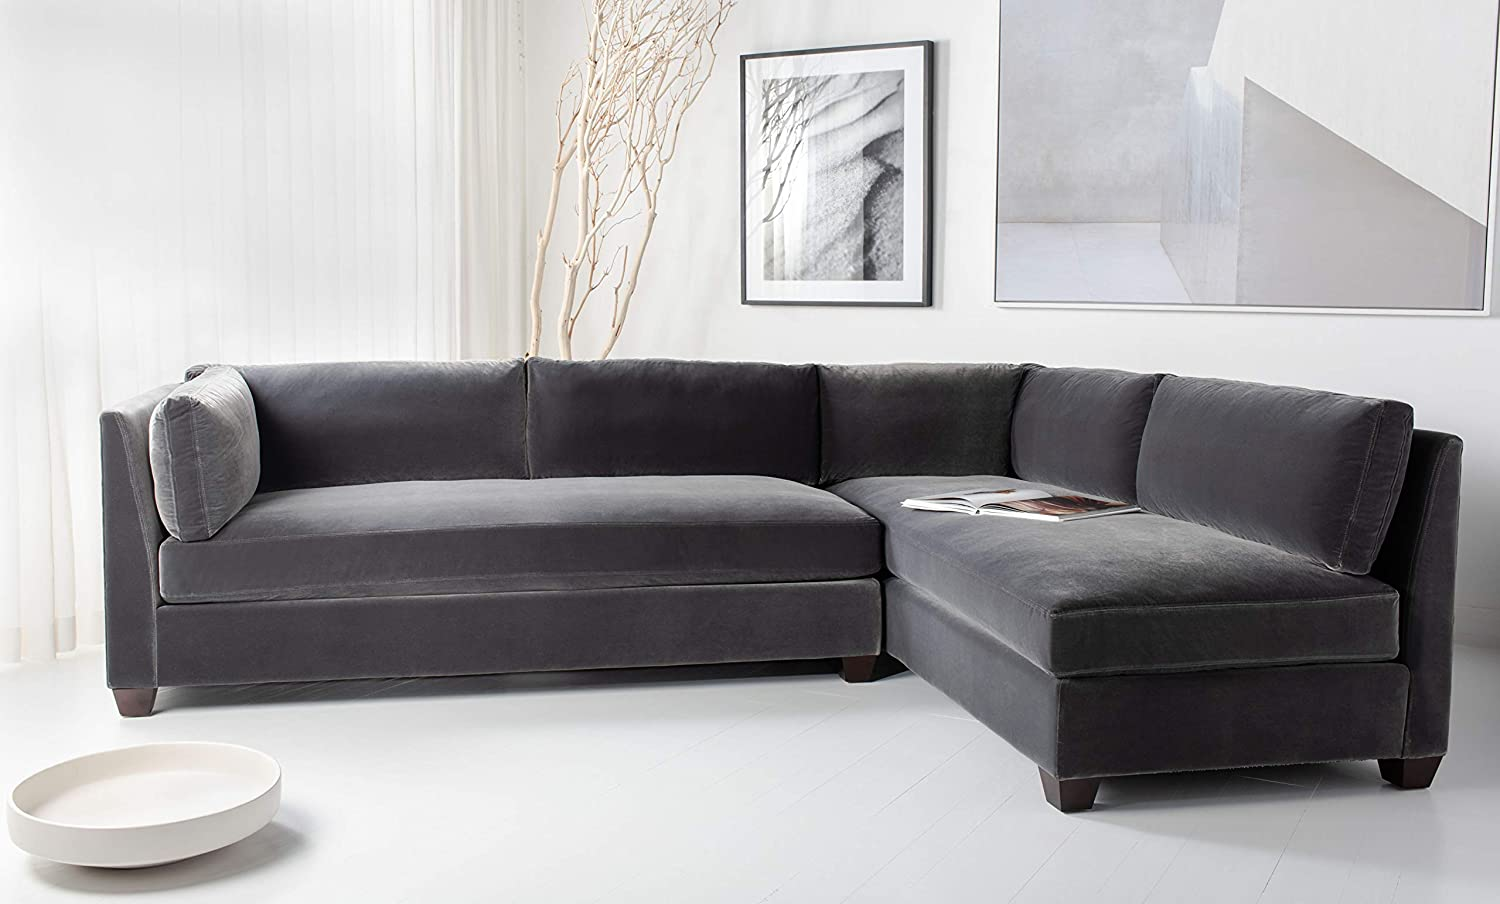 Safavieh Couture Home Bianchi Charcoal and Espresso Sectional Sofa